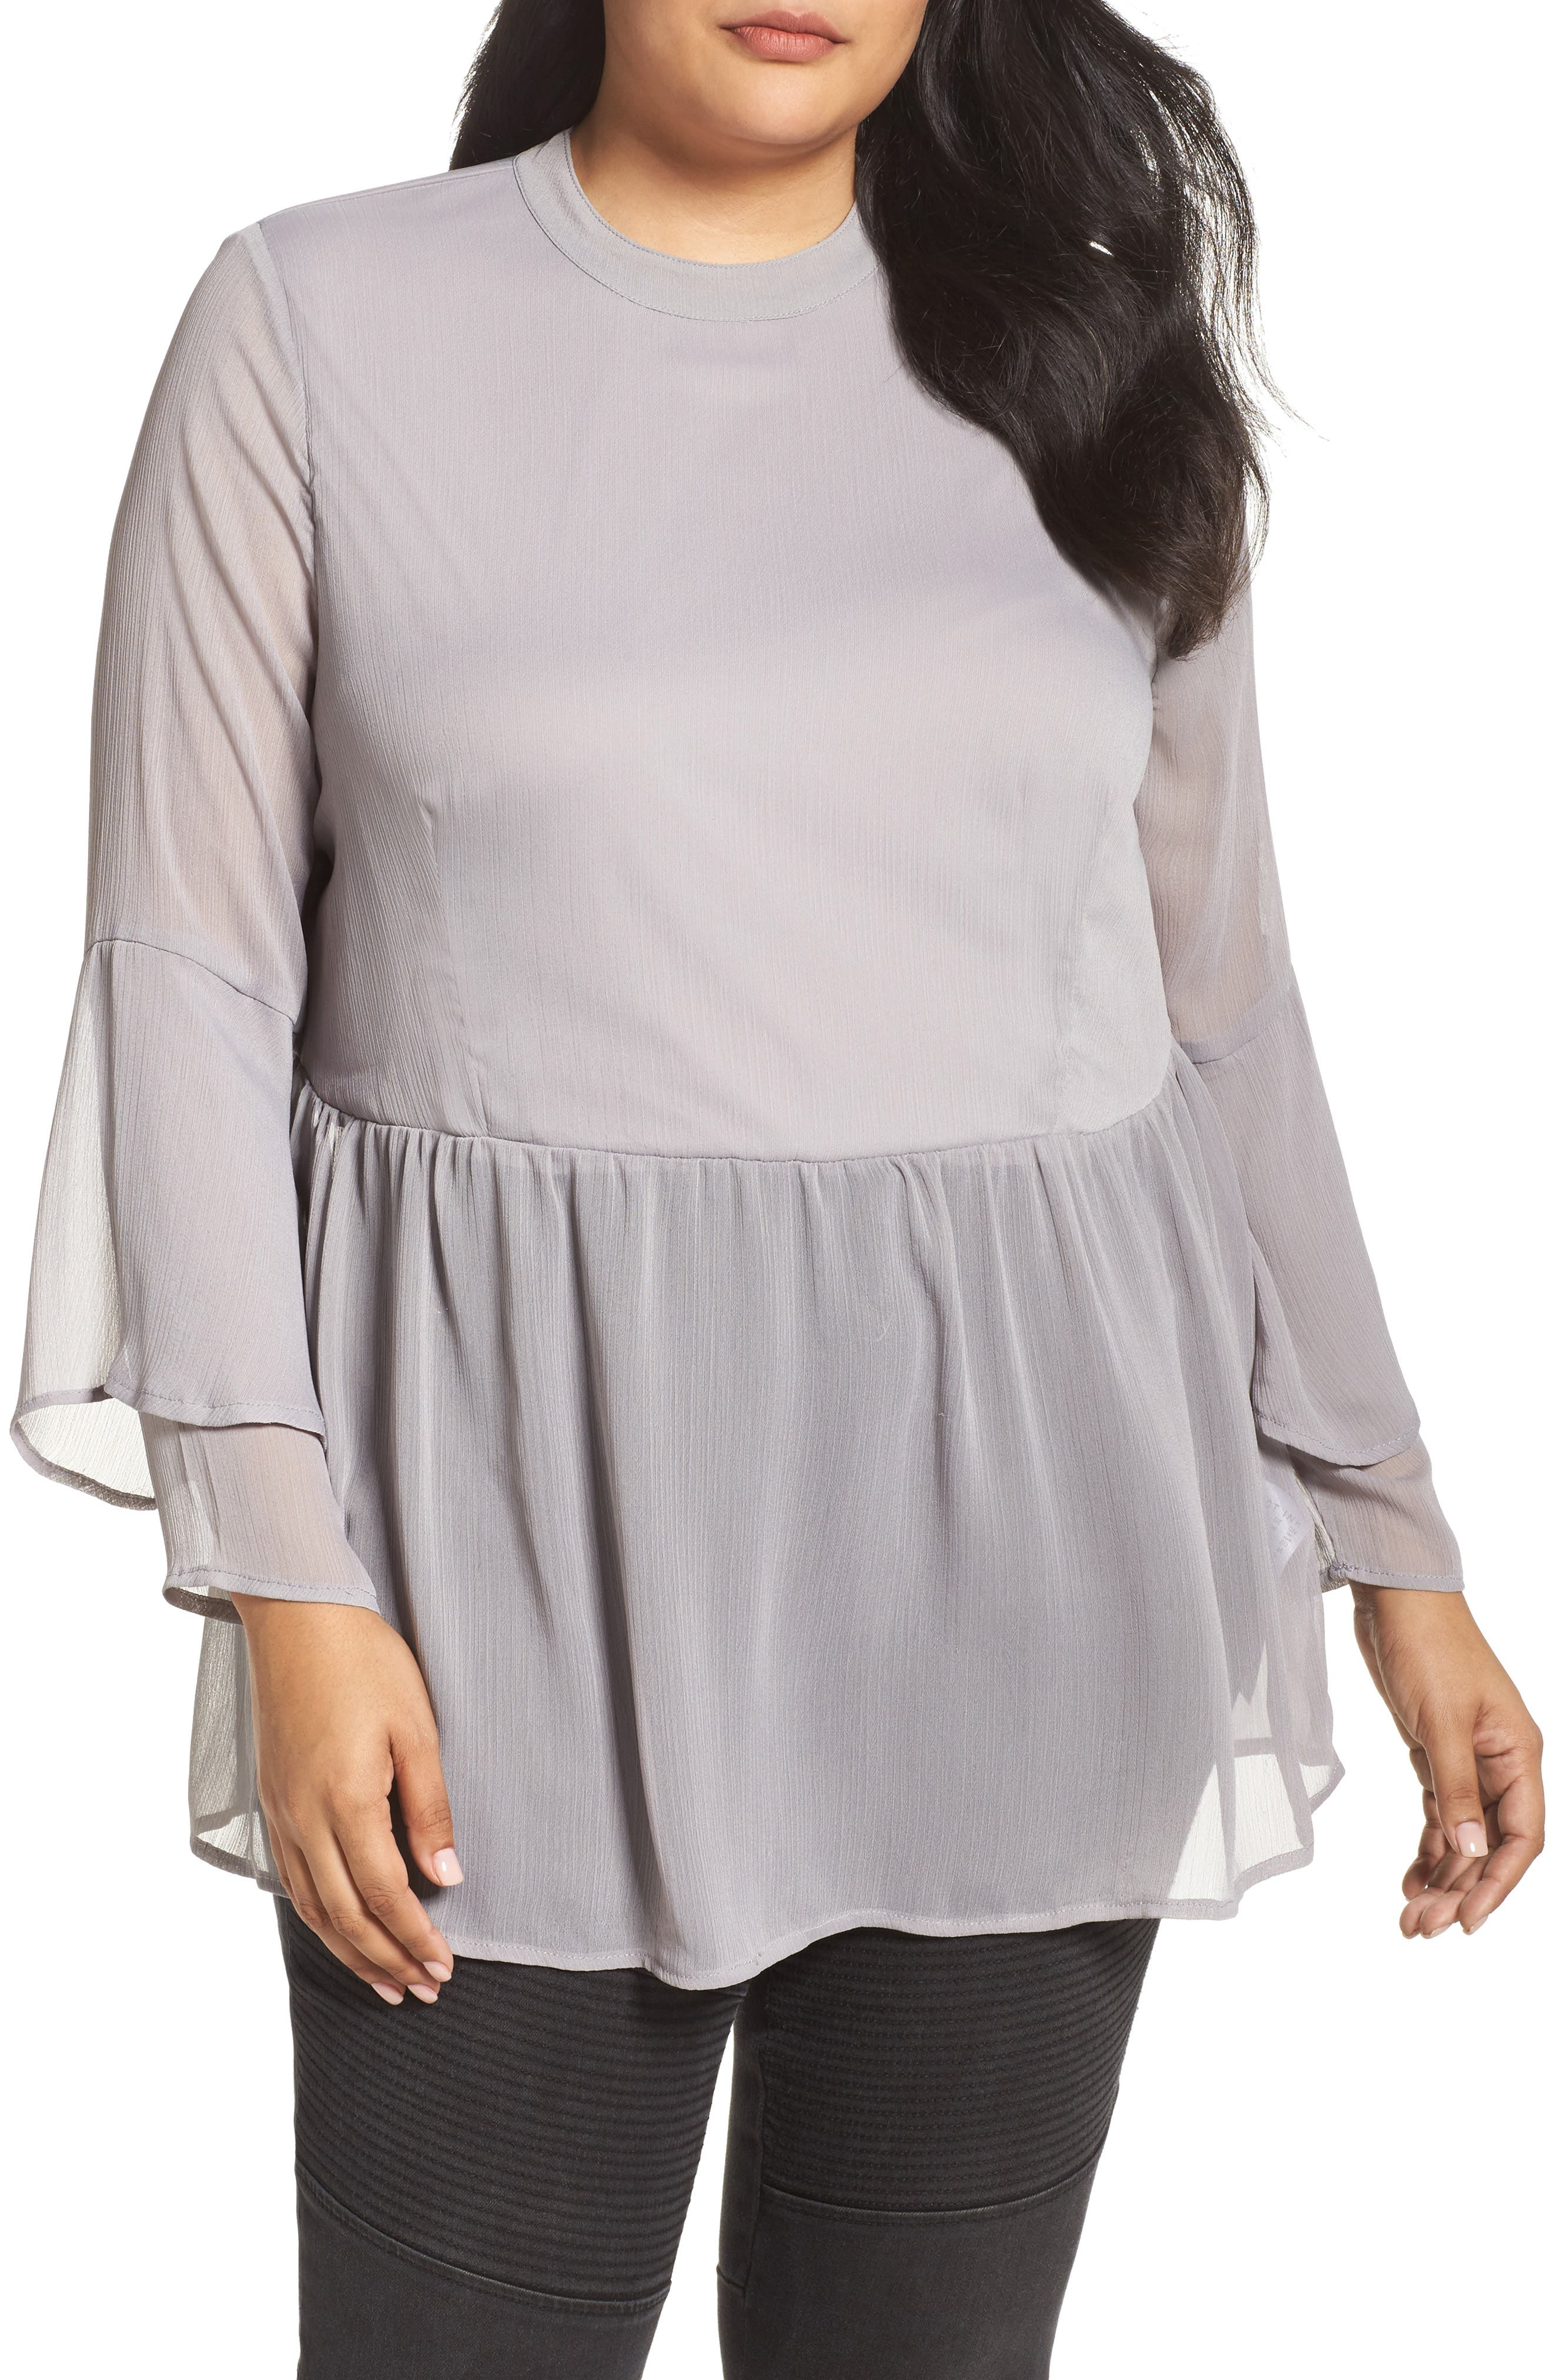 LOST INK Crinkled Chiffon Top (Plus Size)